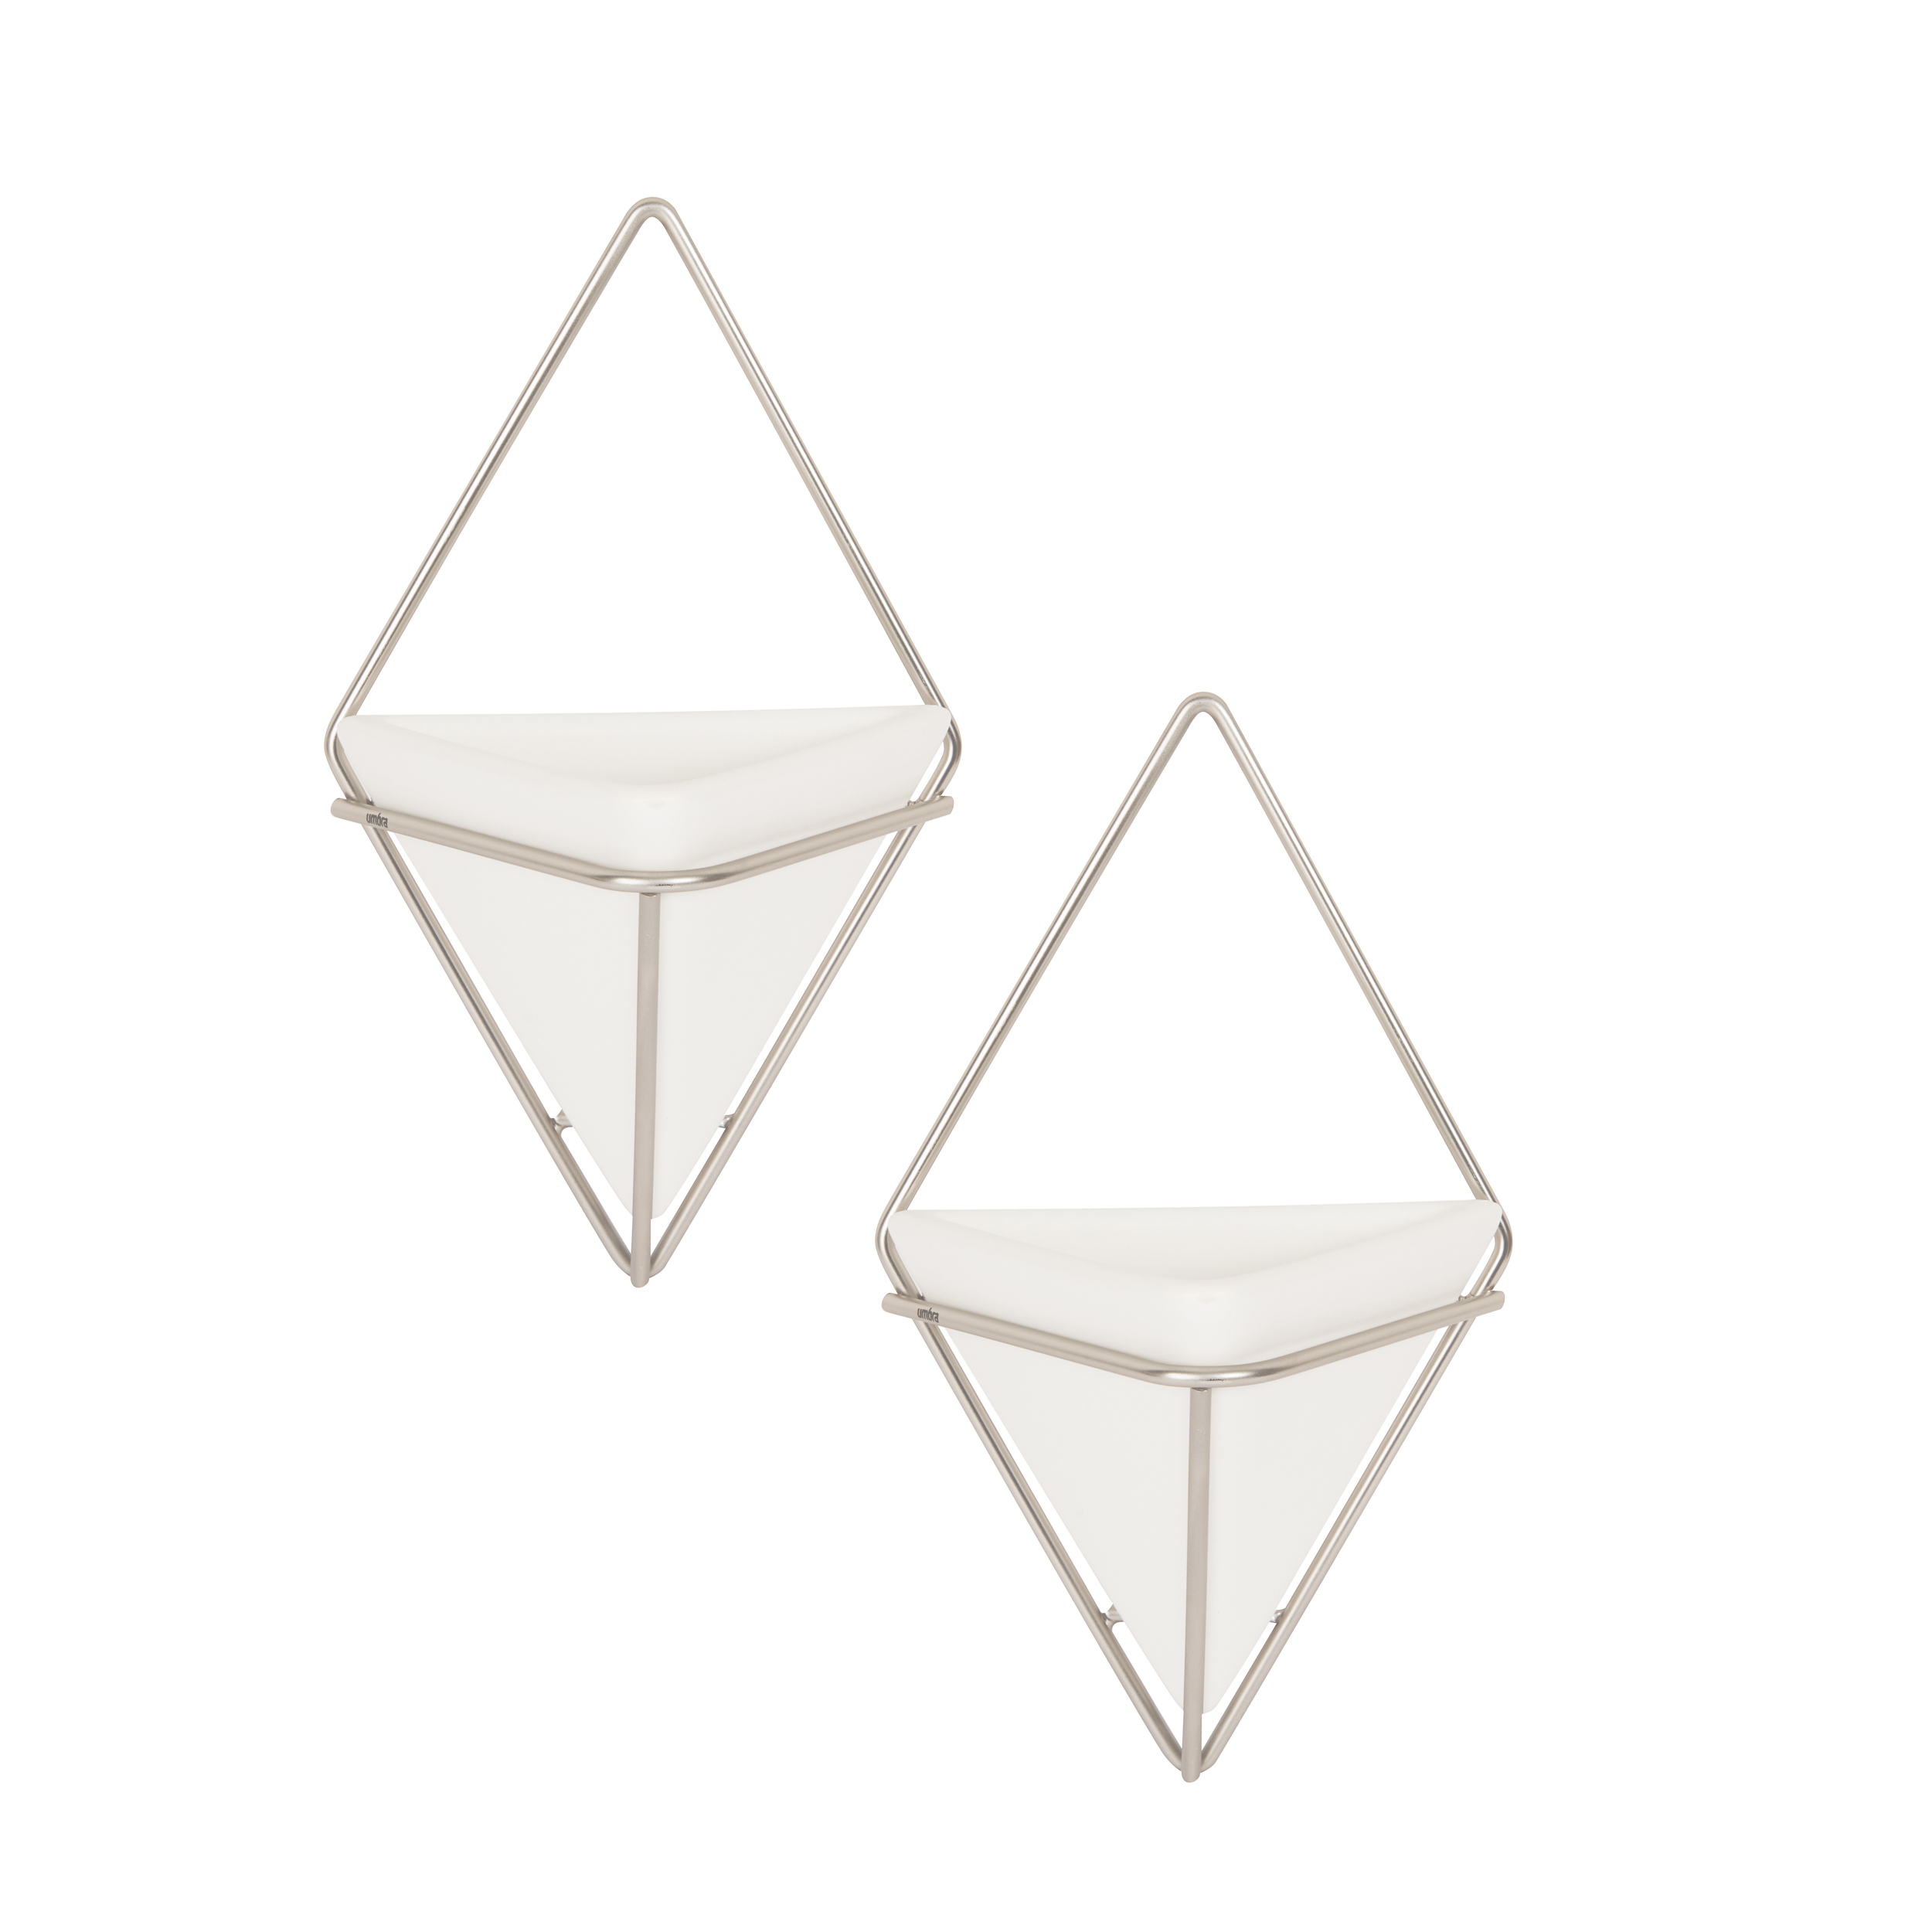 Trigg Hanging Planter Vase & Geometric Wall Decor Container inside 2 Piece Trigg Wall Decor Sets (Set of 2) (Image 14 of 30)